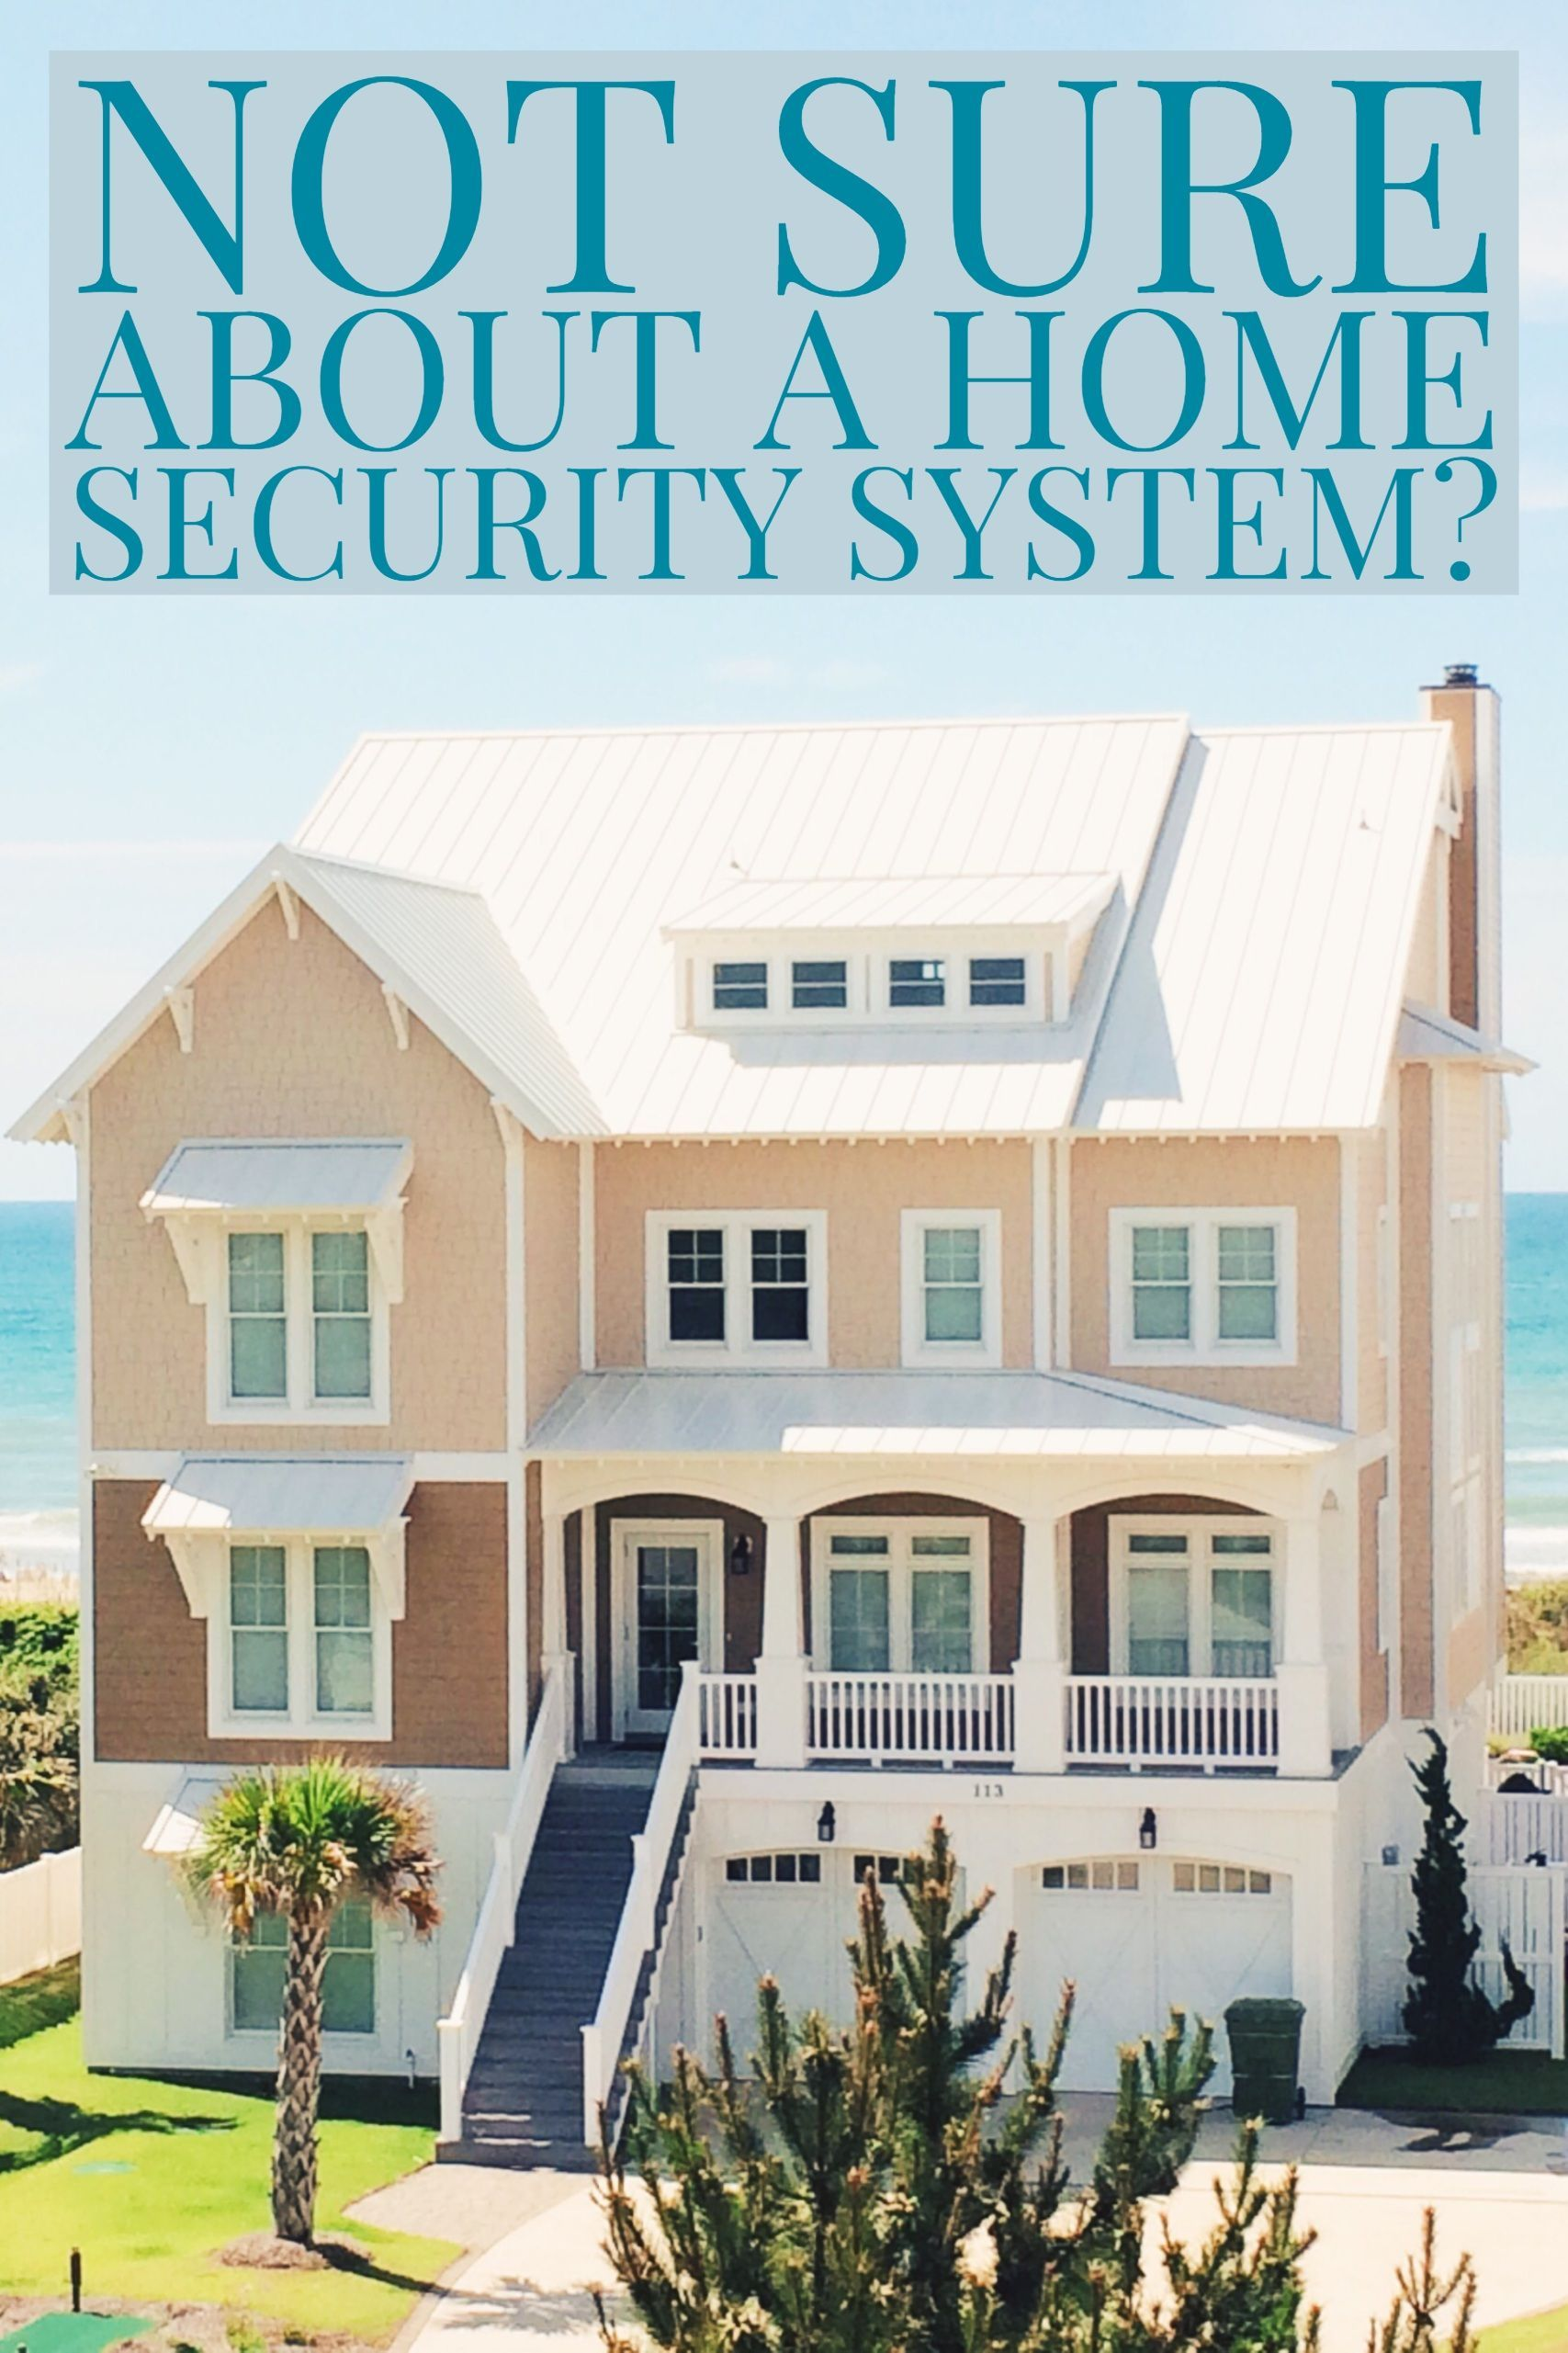 Debating to get a home security system This article helps break